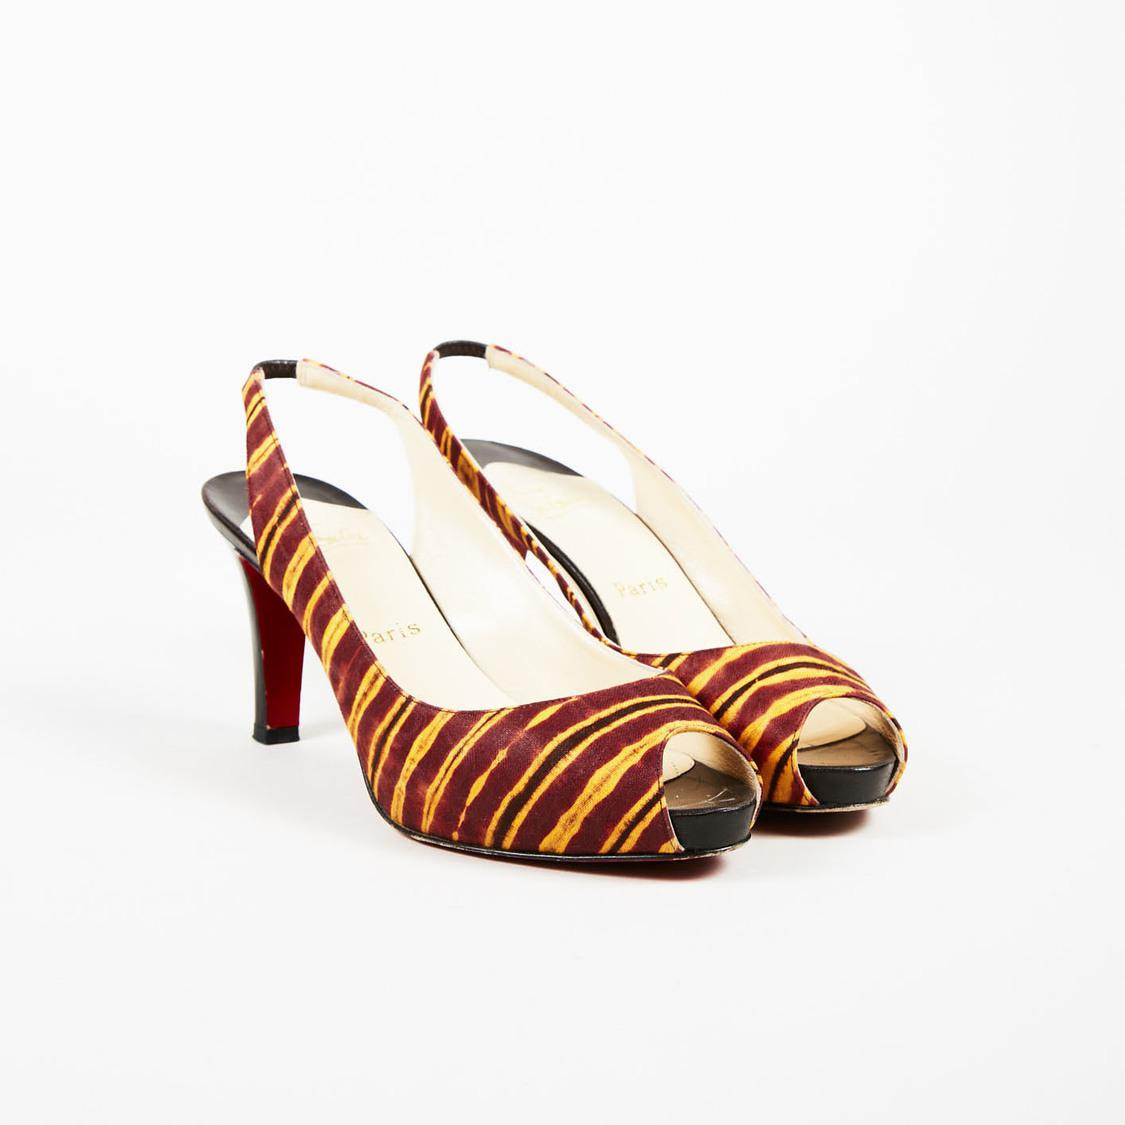 0ae5e69a48c Lyst - Christian Louboutin Red Yellow Multicolor Slingback Pumps in Red